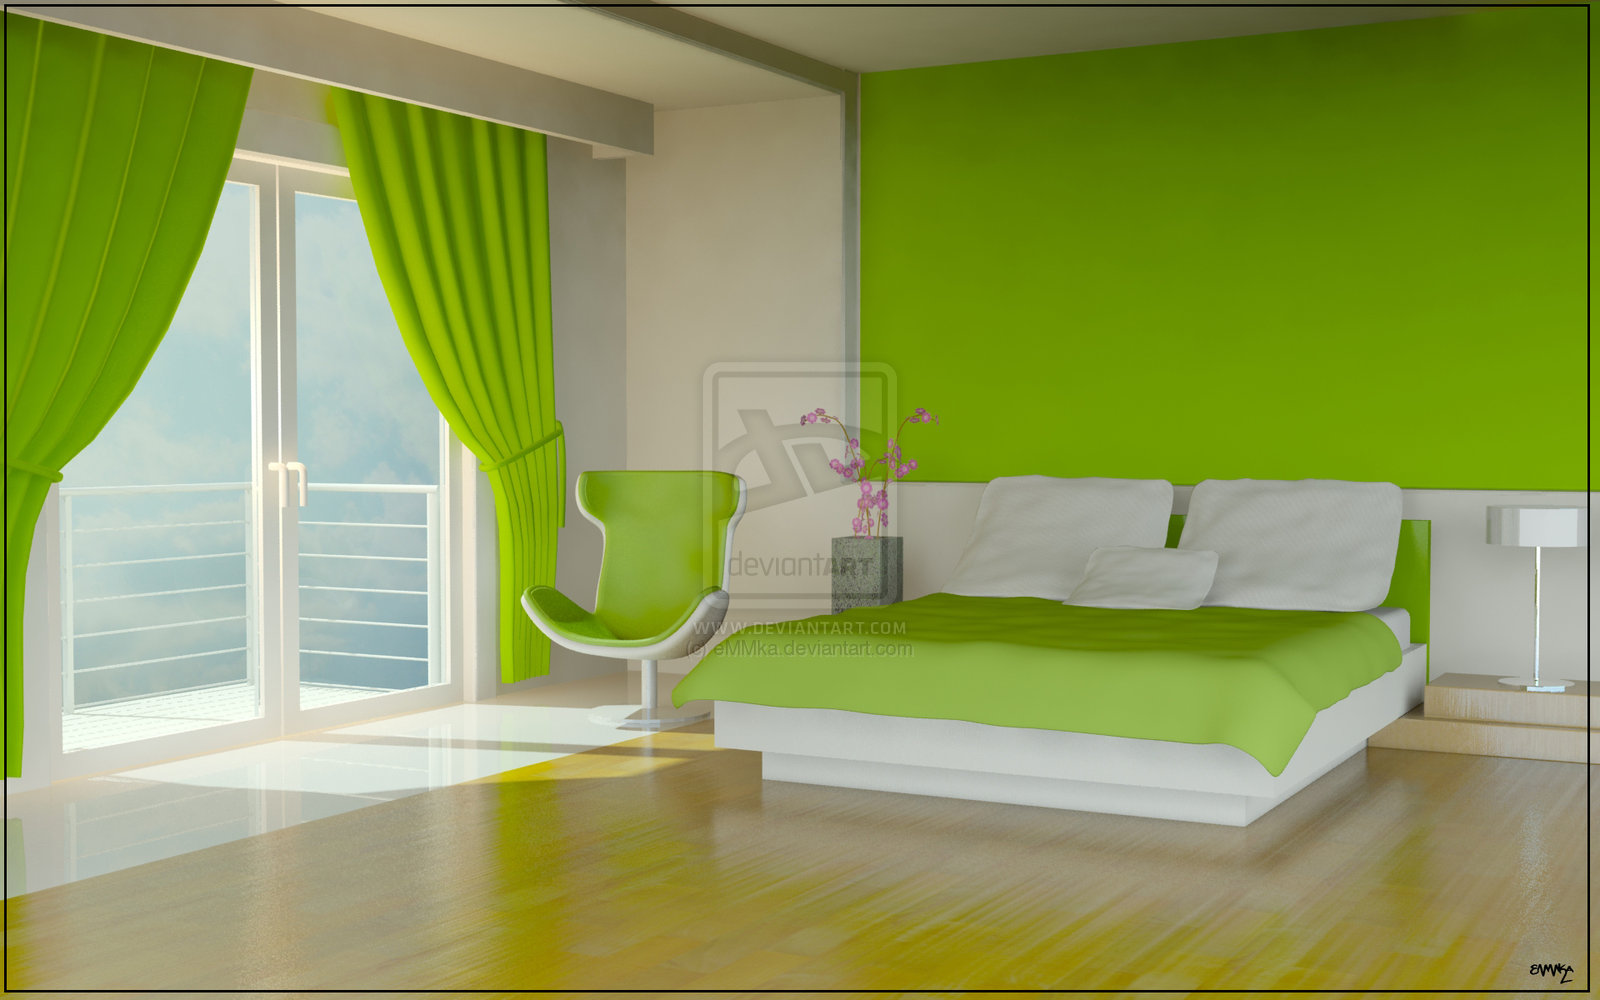 Green color bedrooms interior design ideas interior design interior decorating ideas - Green interior design ...